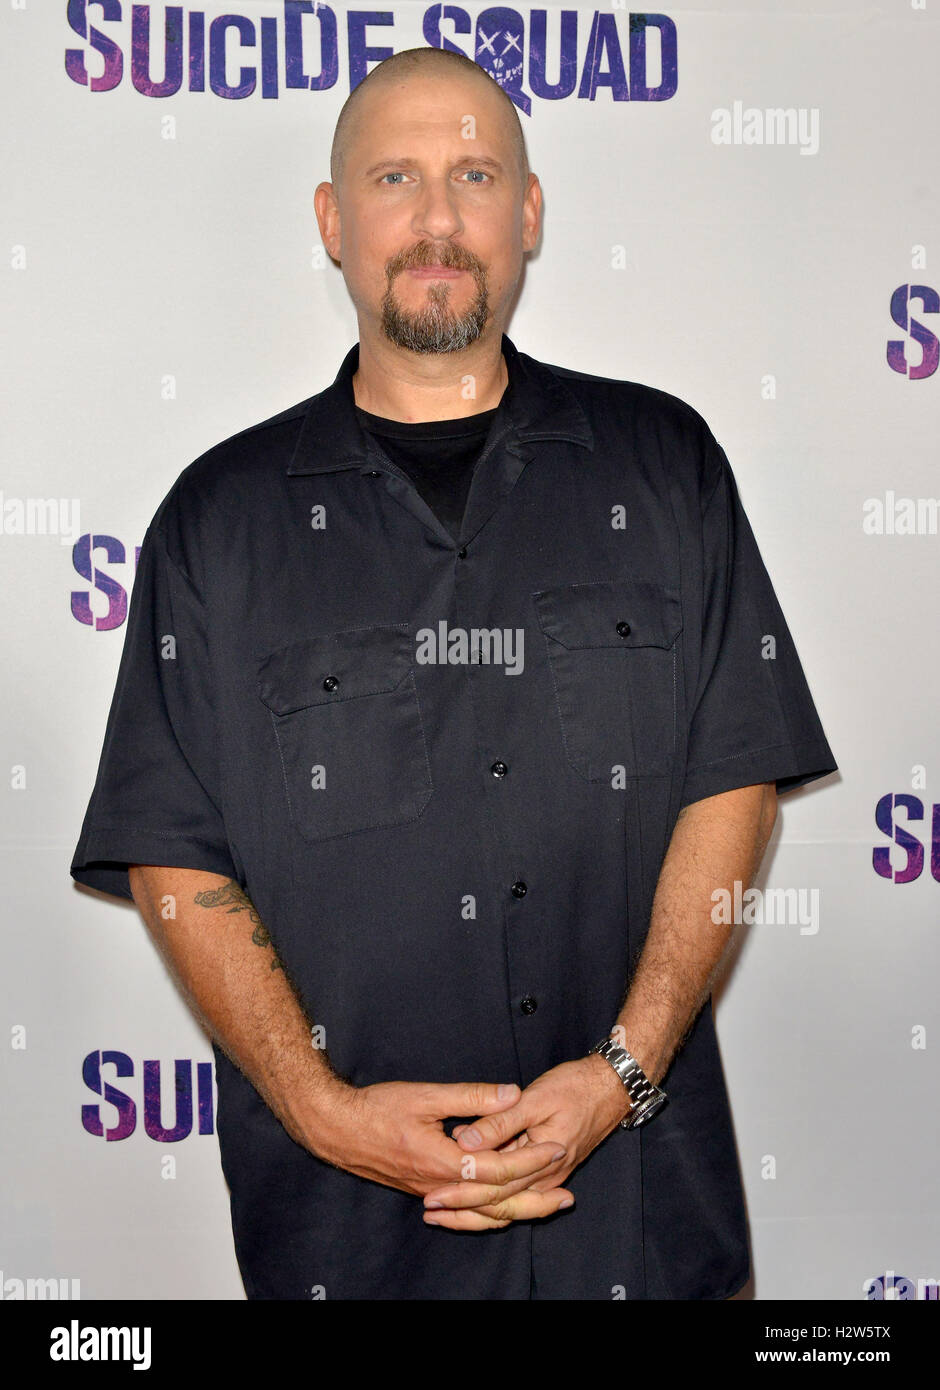 Suicide Squad' Wynwood Block Party and Mural Reveal in Miami, Florida  Featuring: David Ayer Where: Miami, Florida, - Stock Image